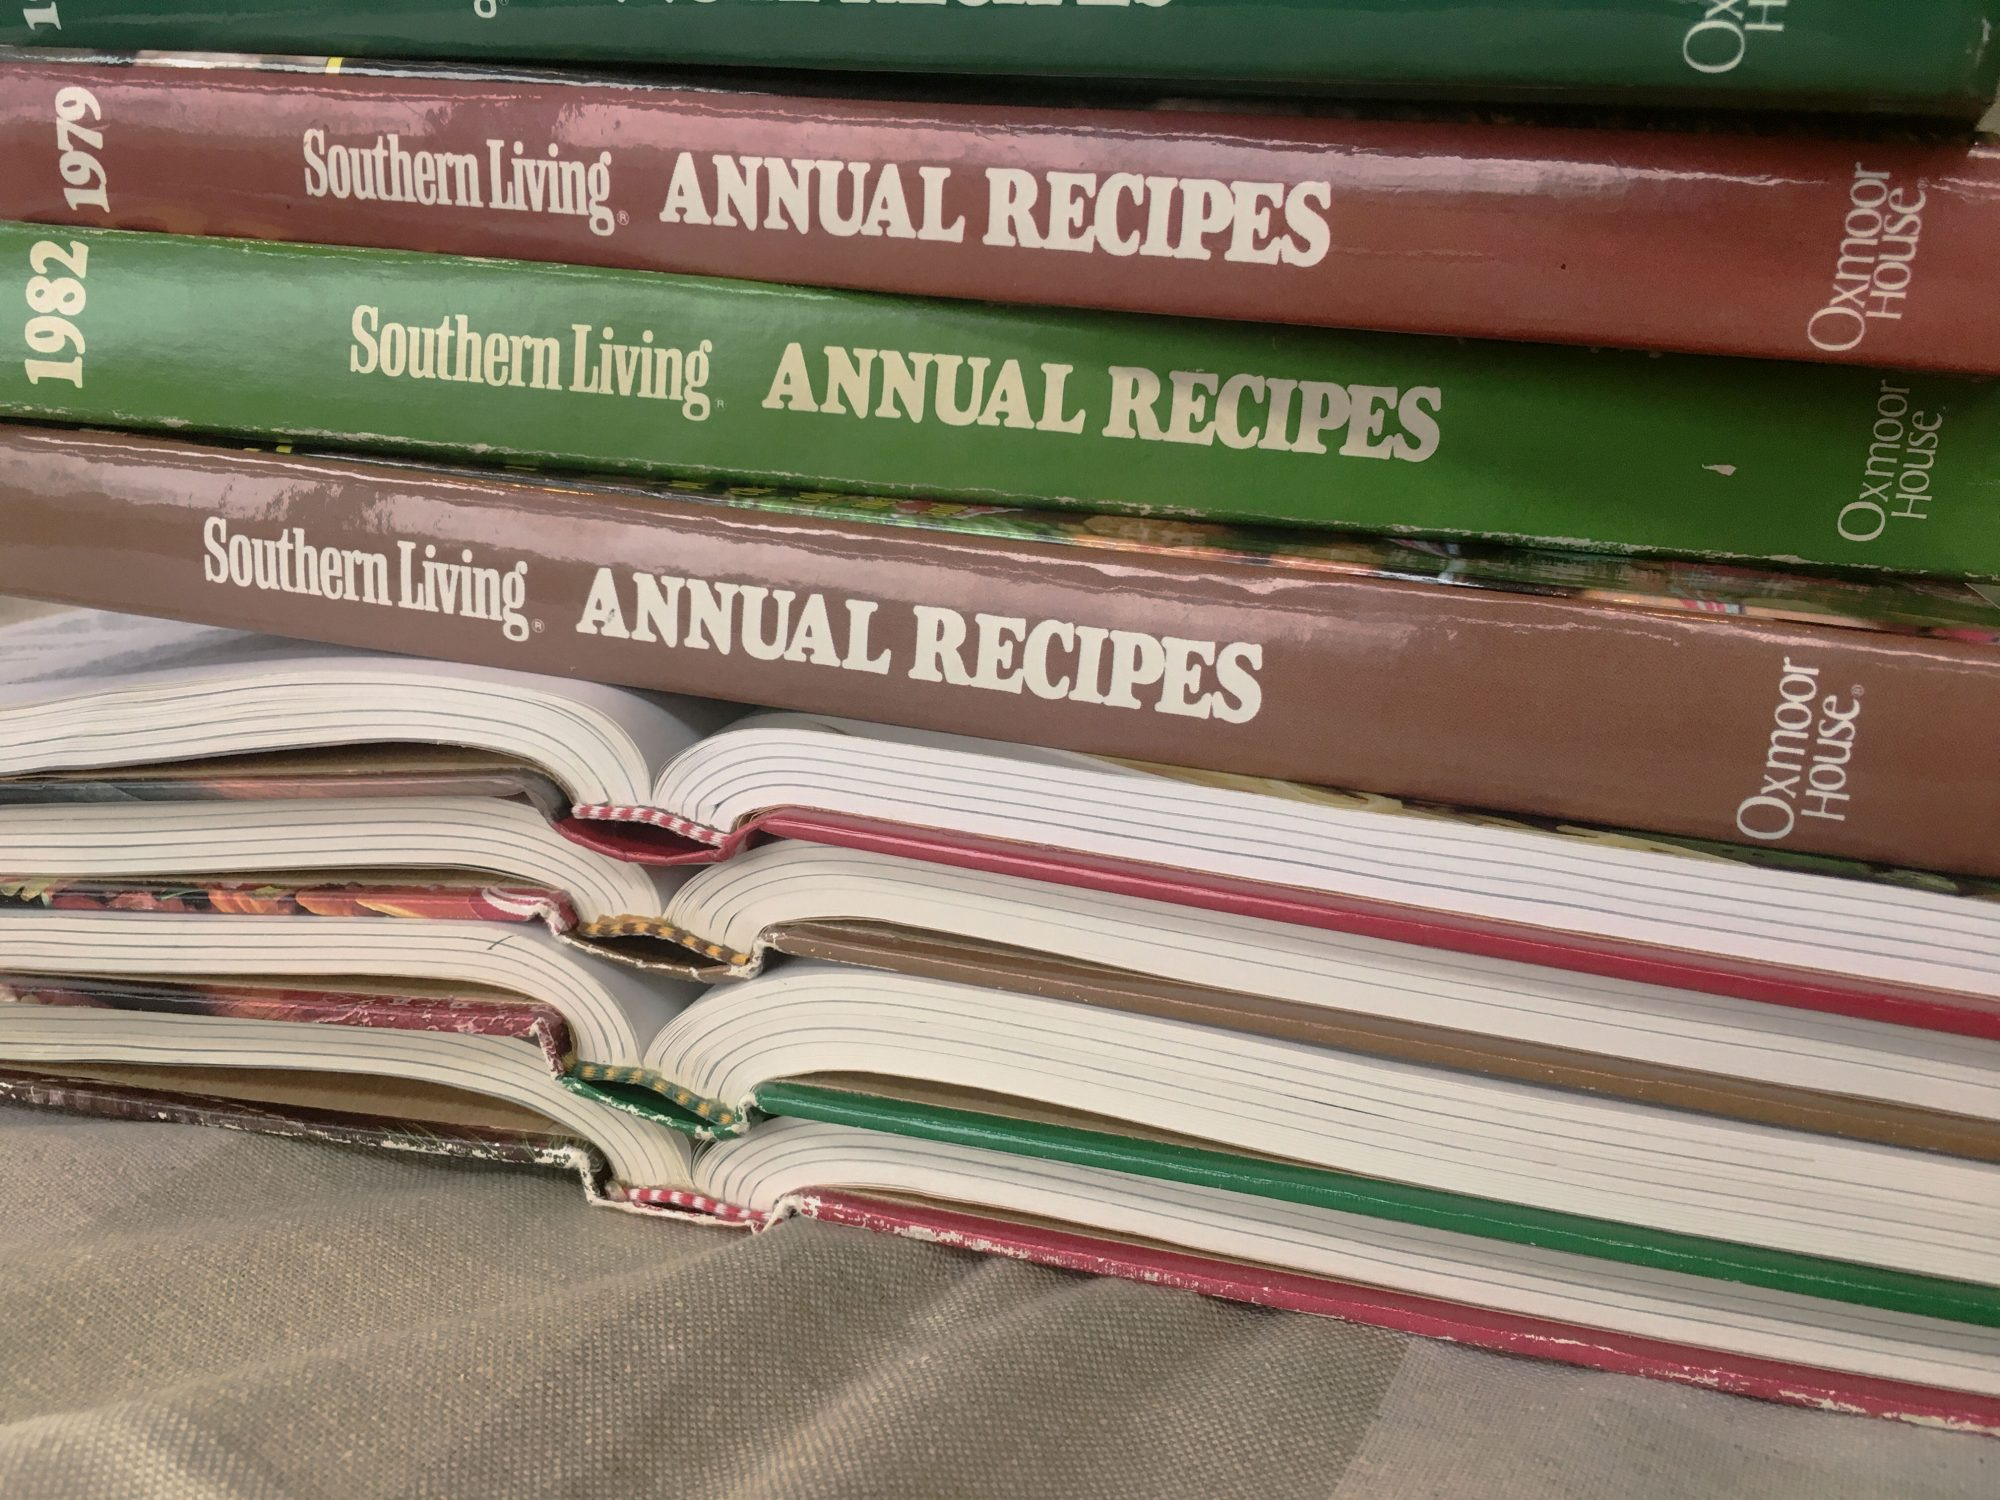 Southern Living Annual Recipes 1980s